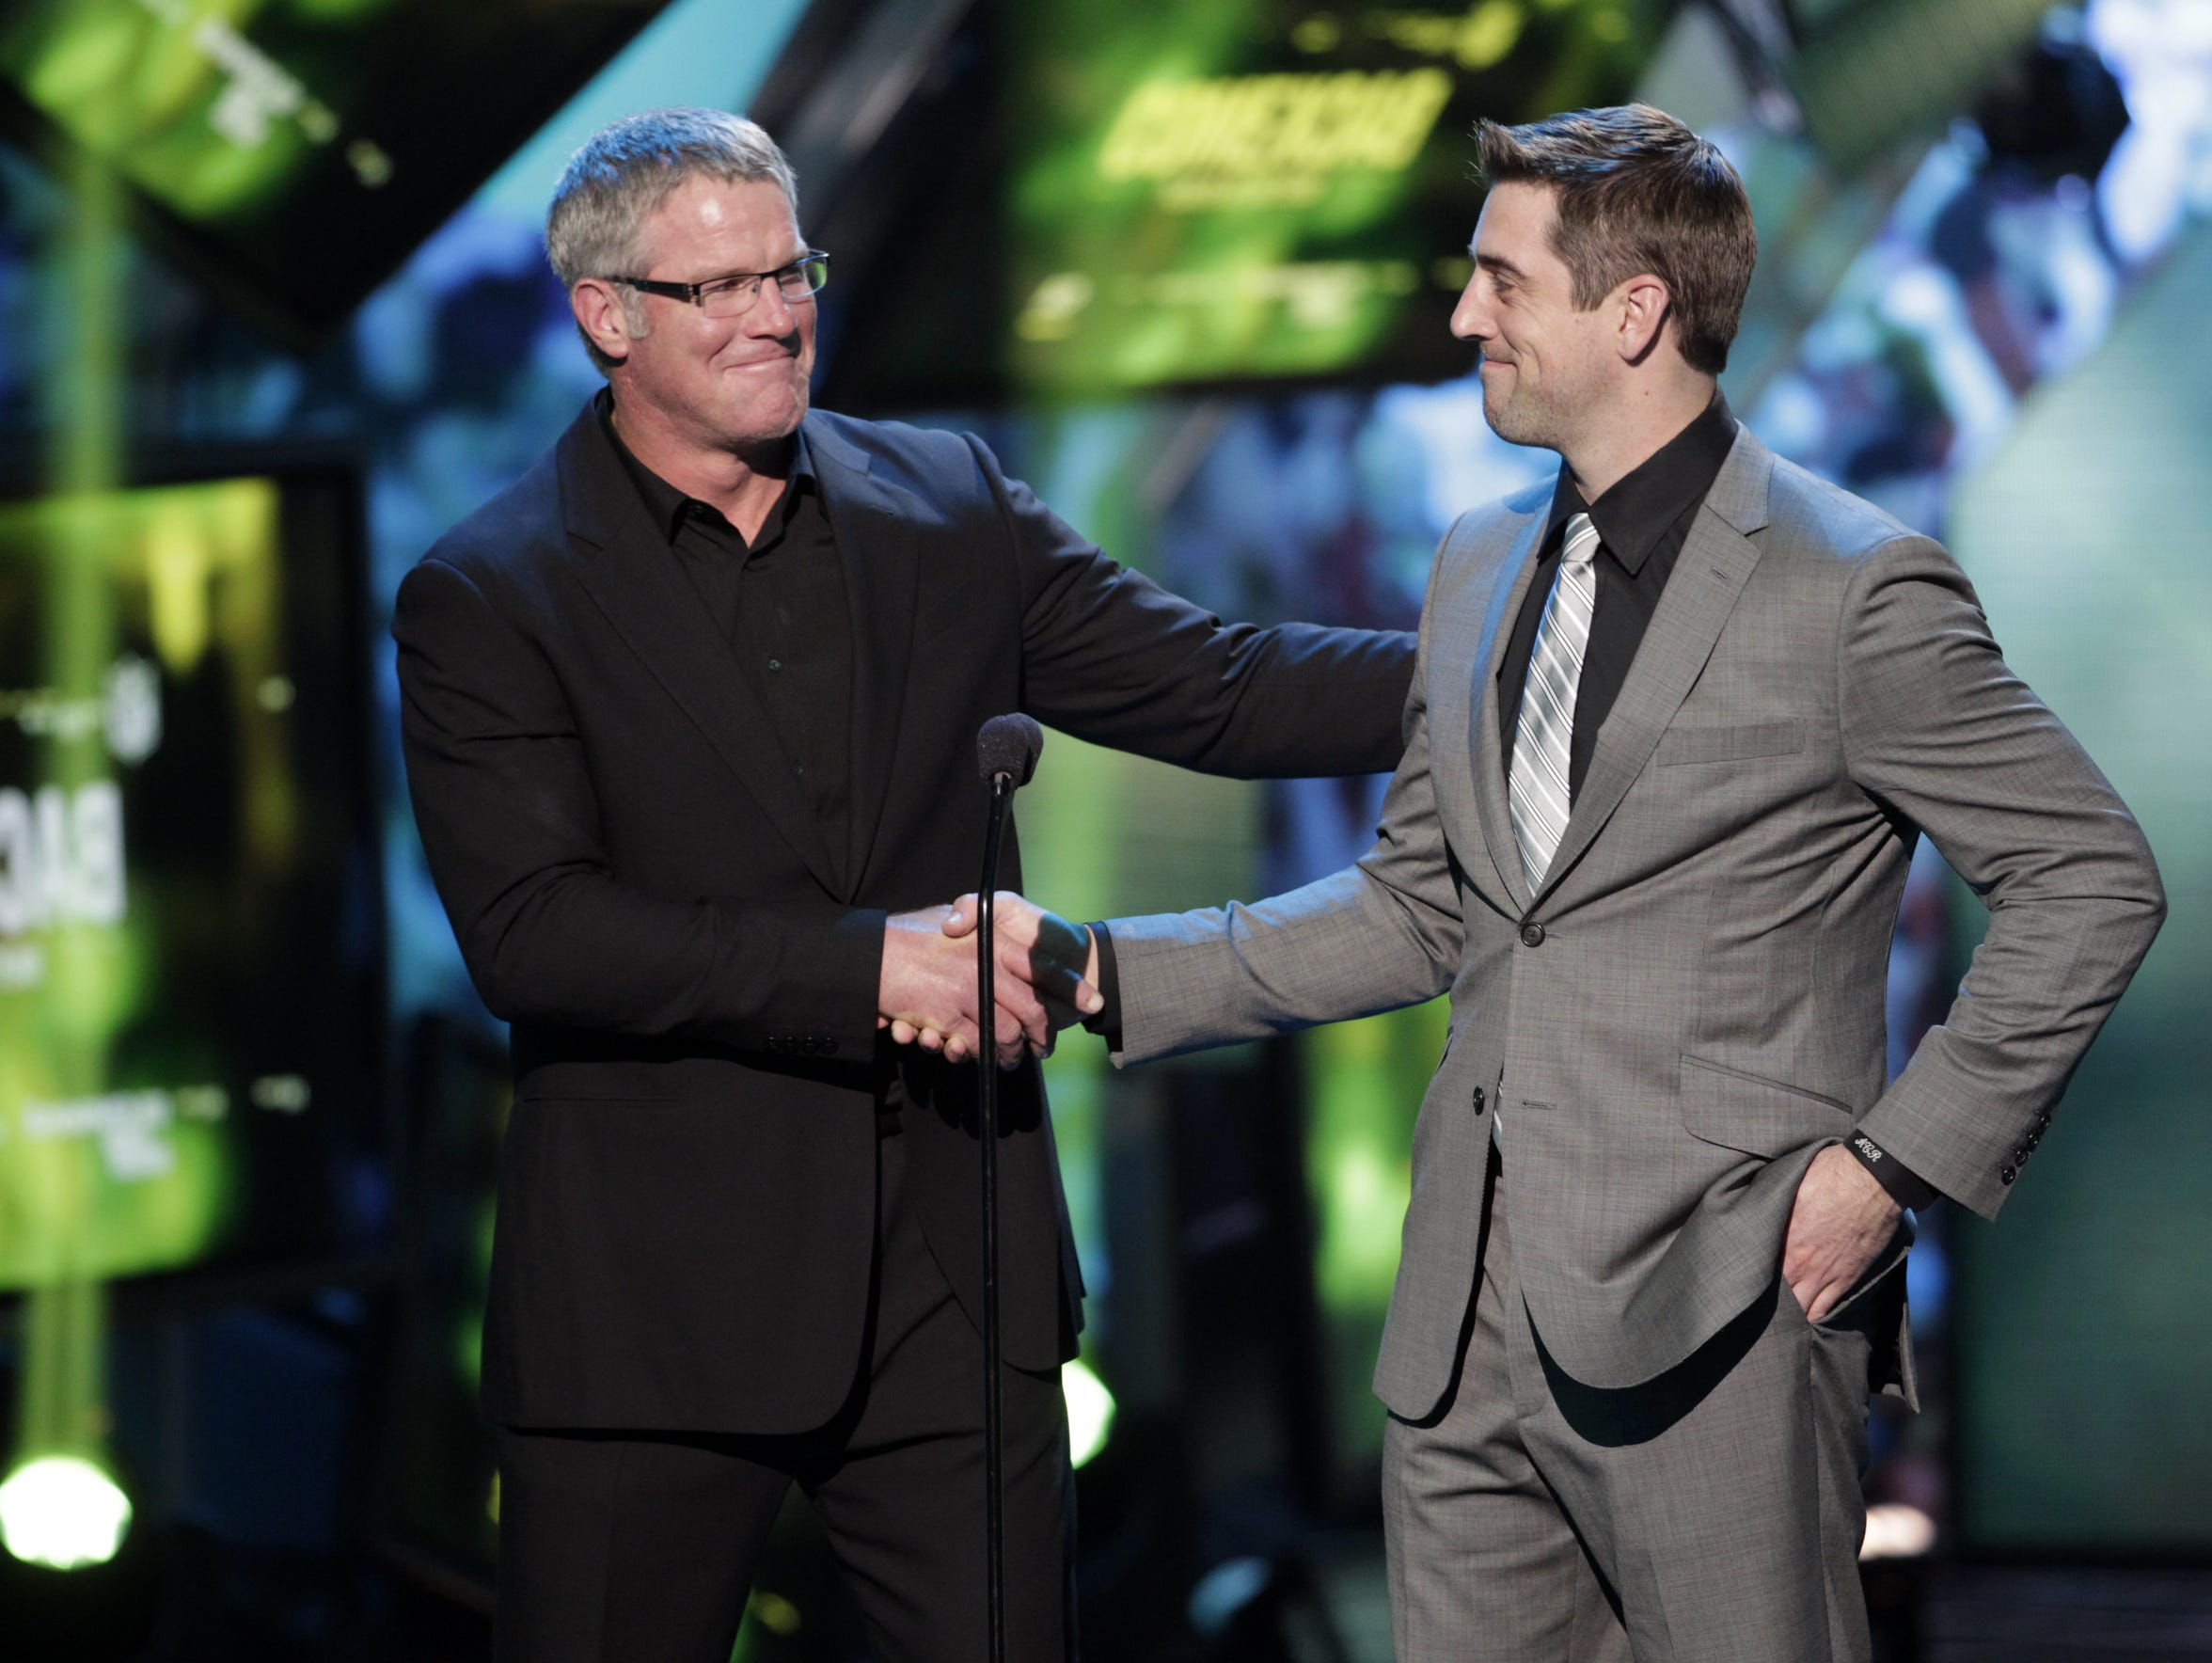 Brett Favre, left, and Aaron Rodgers present at the